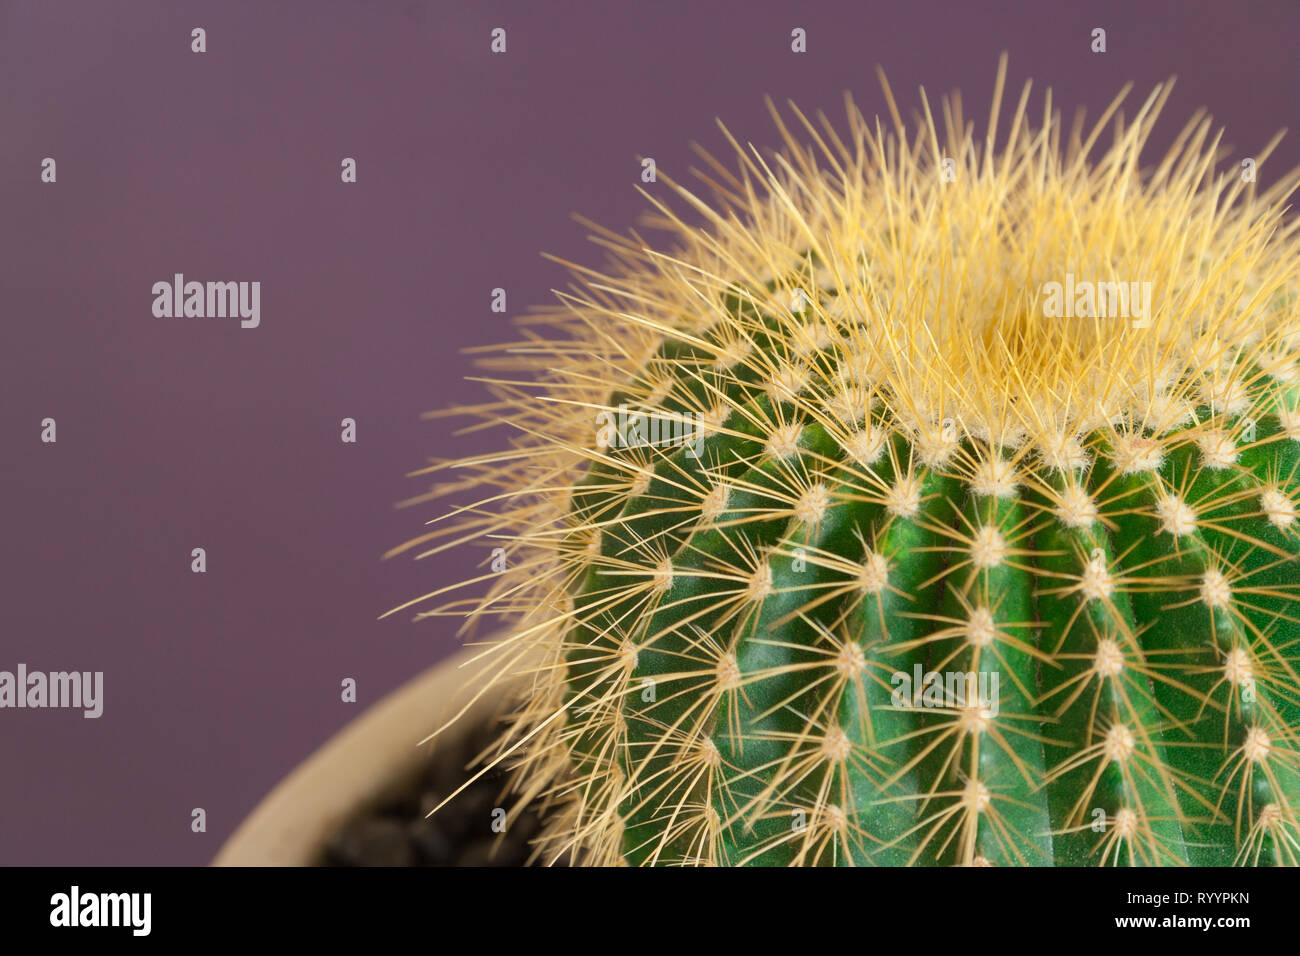 cactus used as home decor against violet background - Stock Image